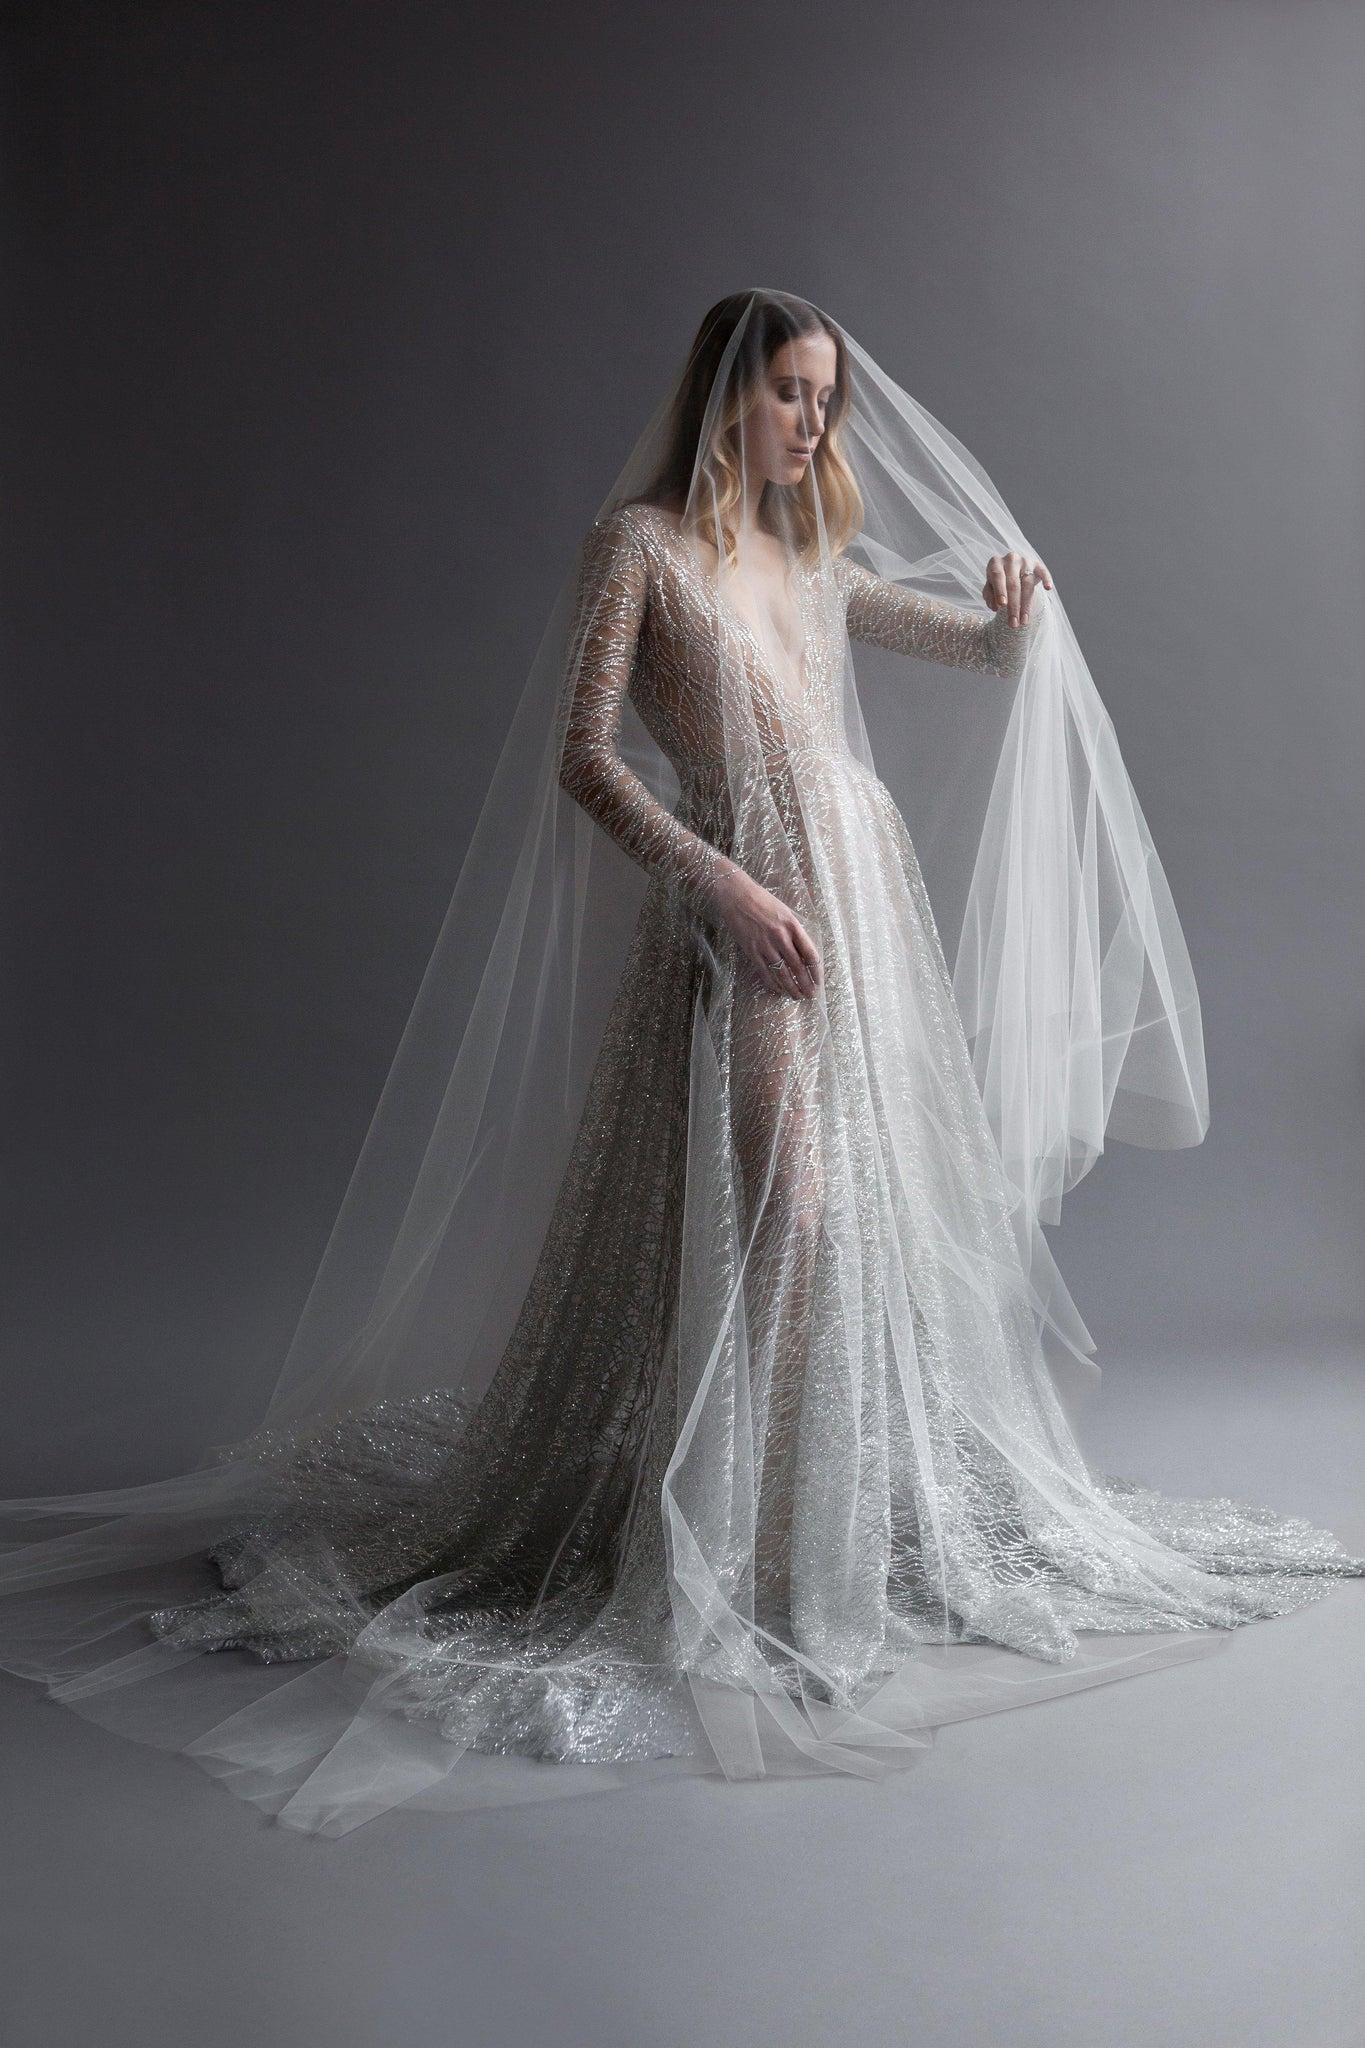 Women in Gray sparkle wedding dress that shimmers with large sheer veil